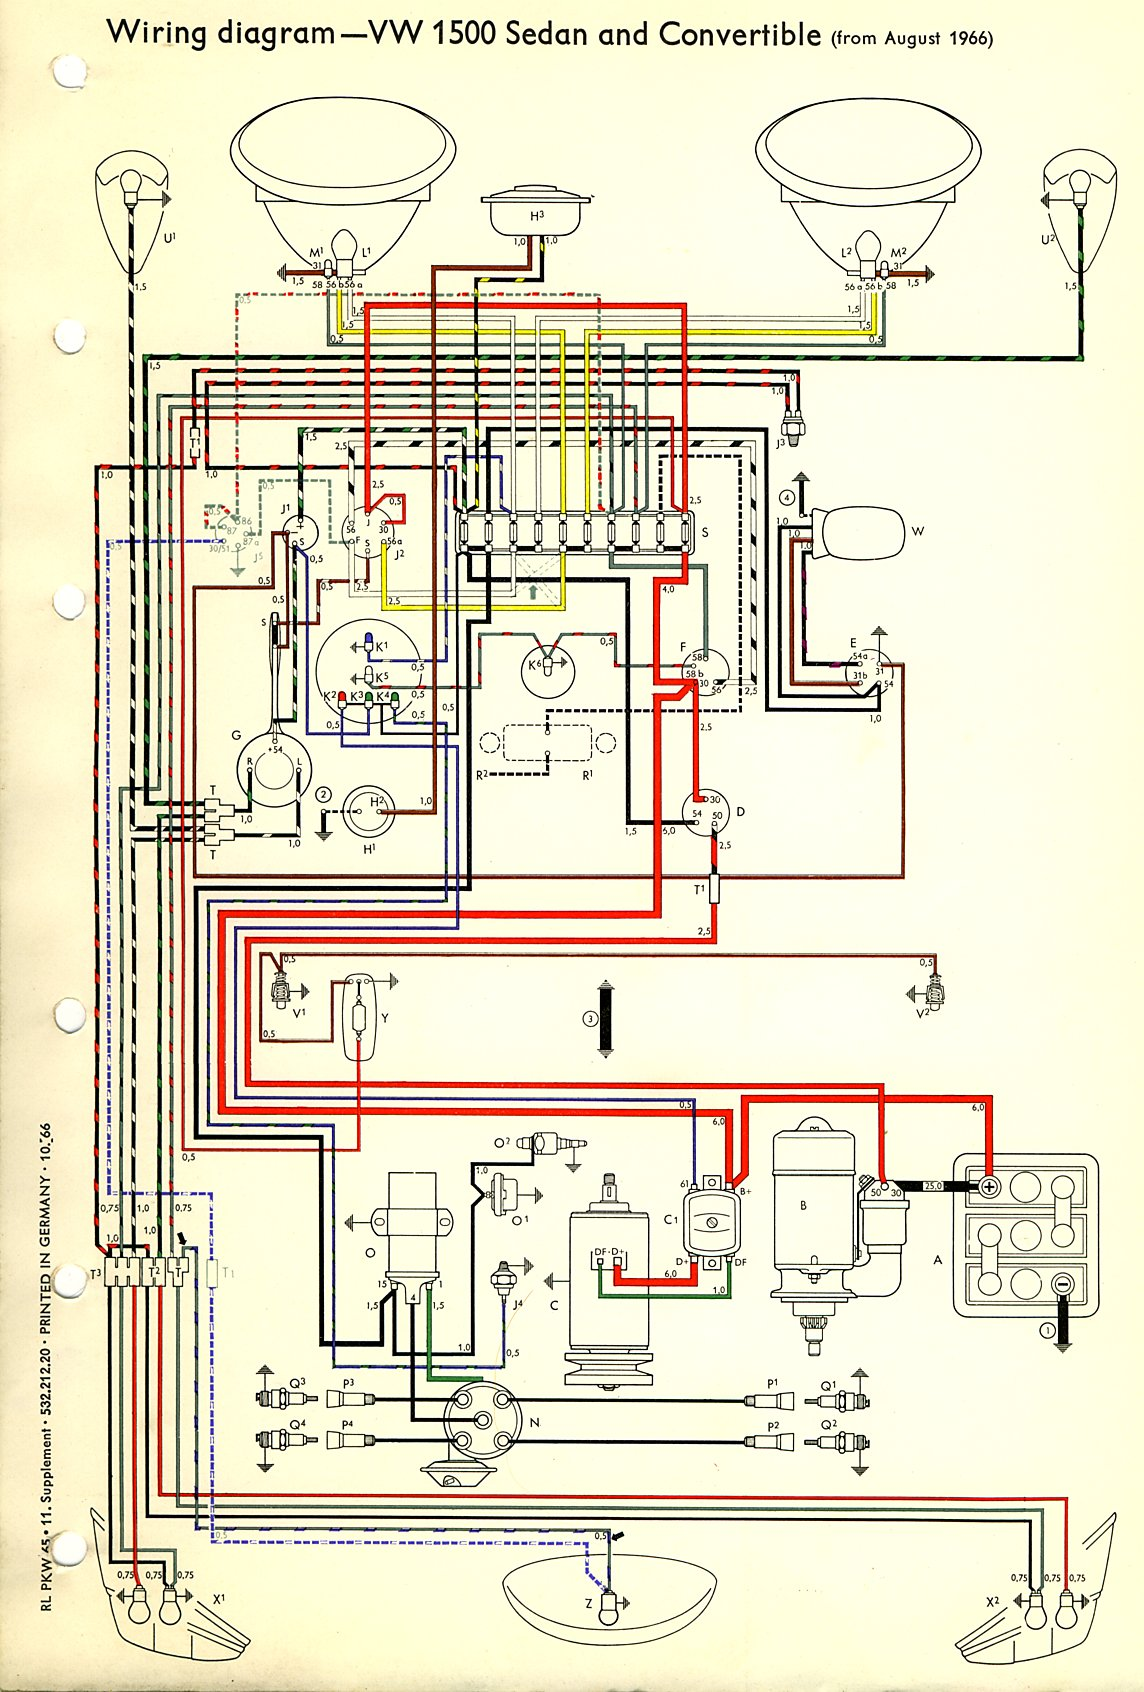 bug_67 1967 beetle wiring diagram thegoldenbug com VW Alternator Hook Up at virtualis.co